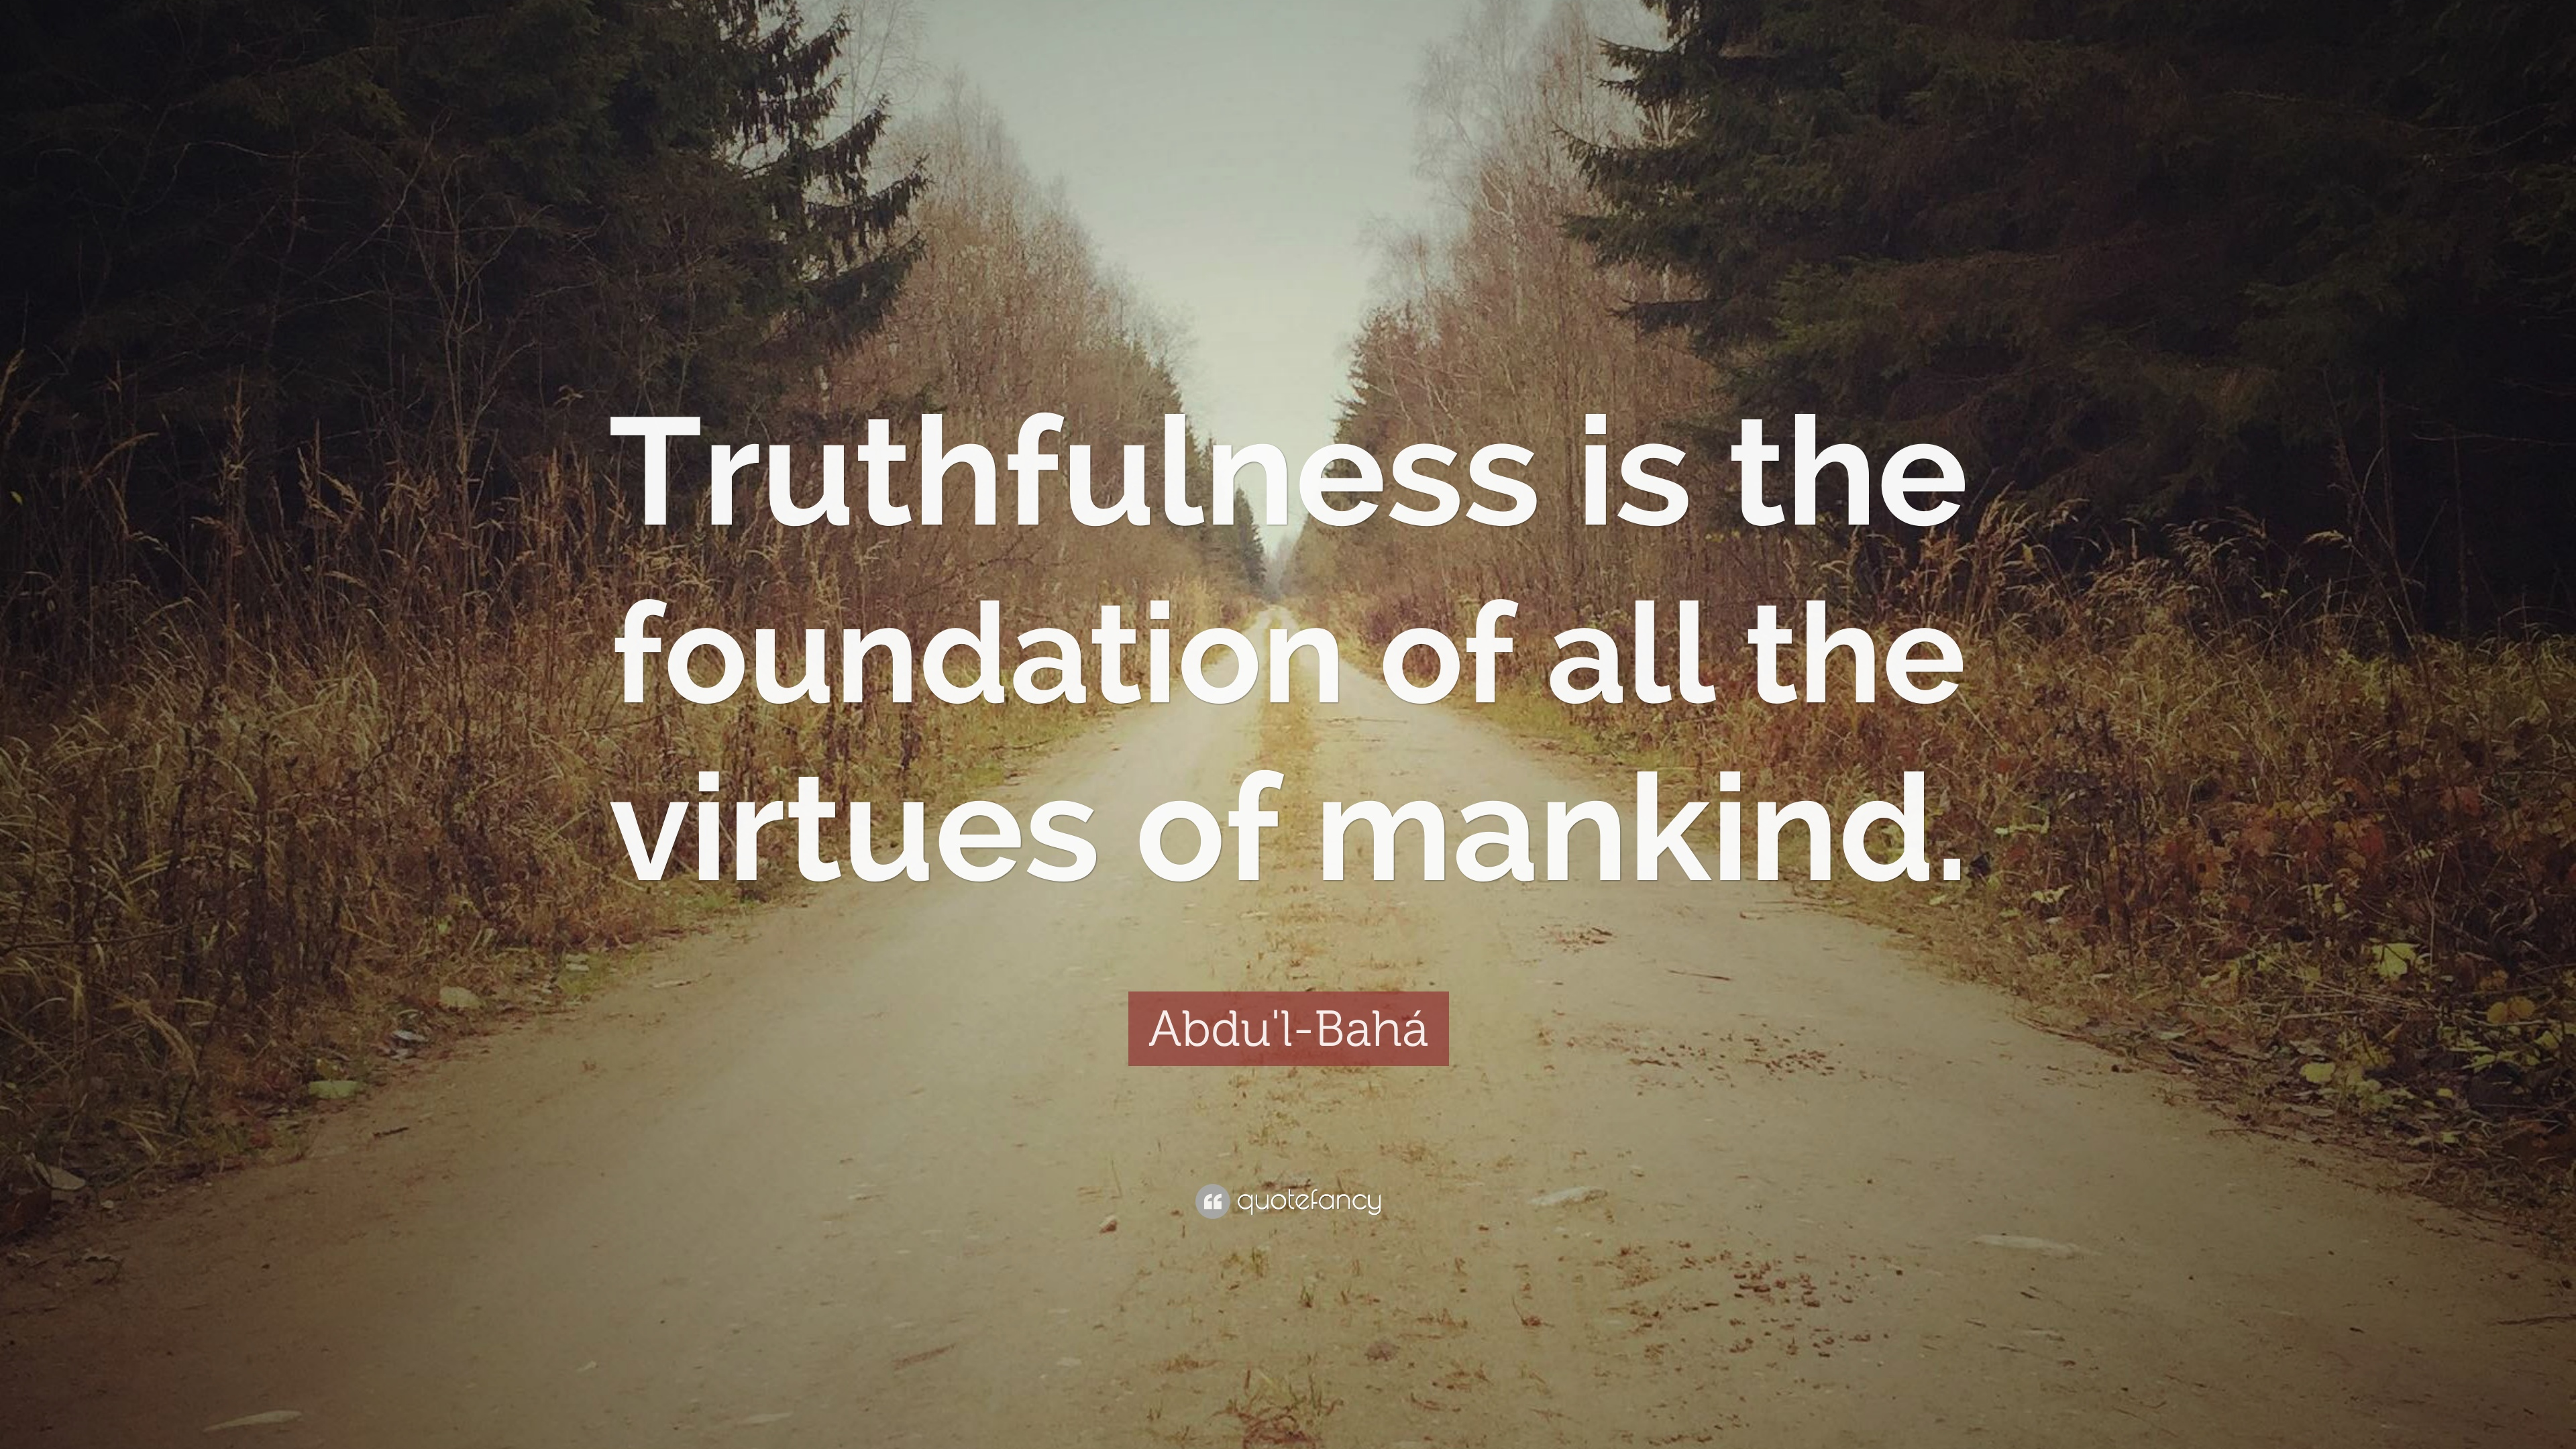 essay on humanity is the foundation of all virtues The foundation of the worldview is laid by philosophy  the notion of humanity was considered by such philosophers as kierkegaard,  what it means to be human.